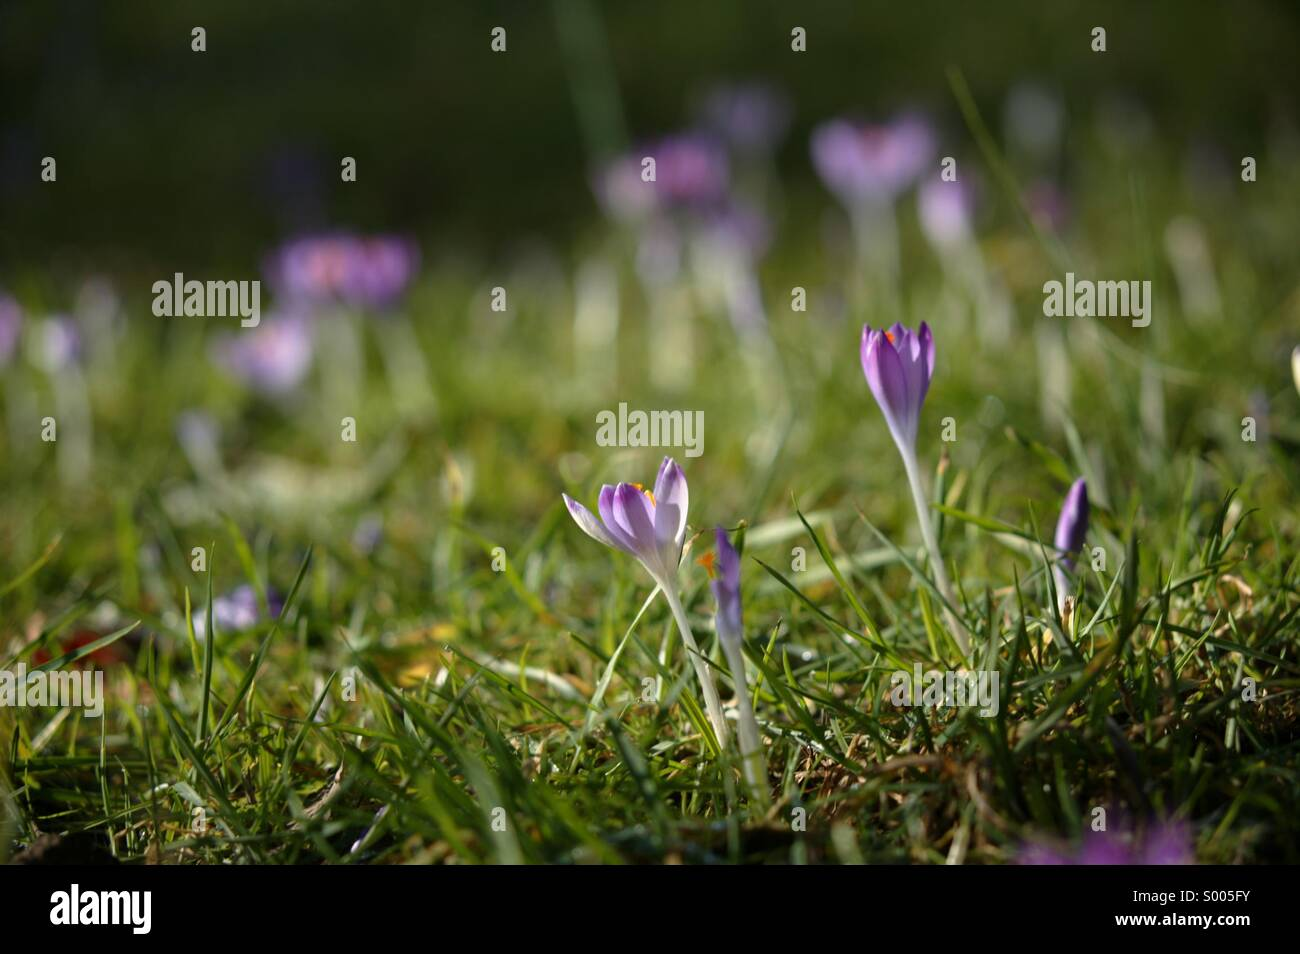 Crocus Photo Stock